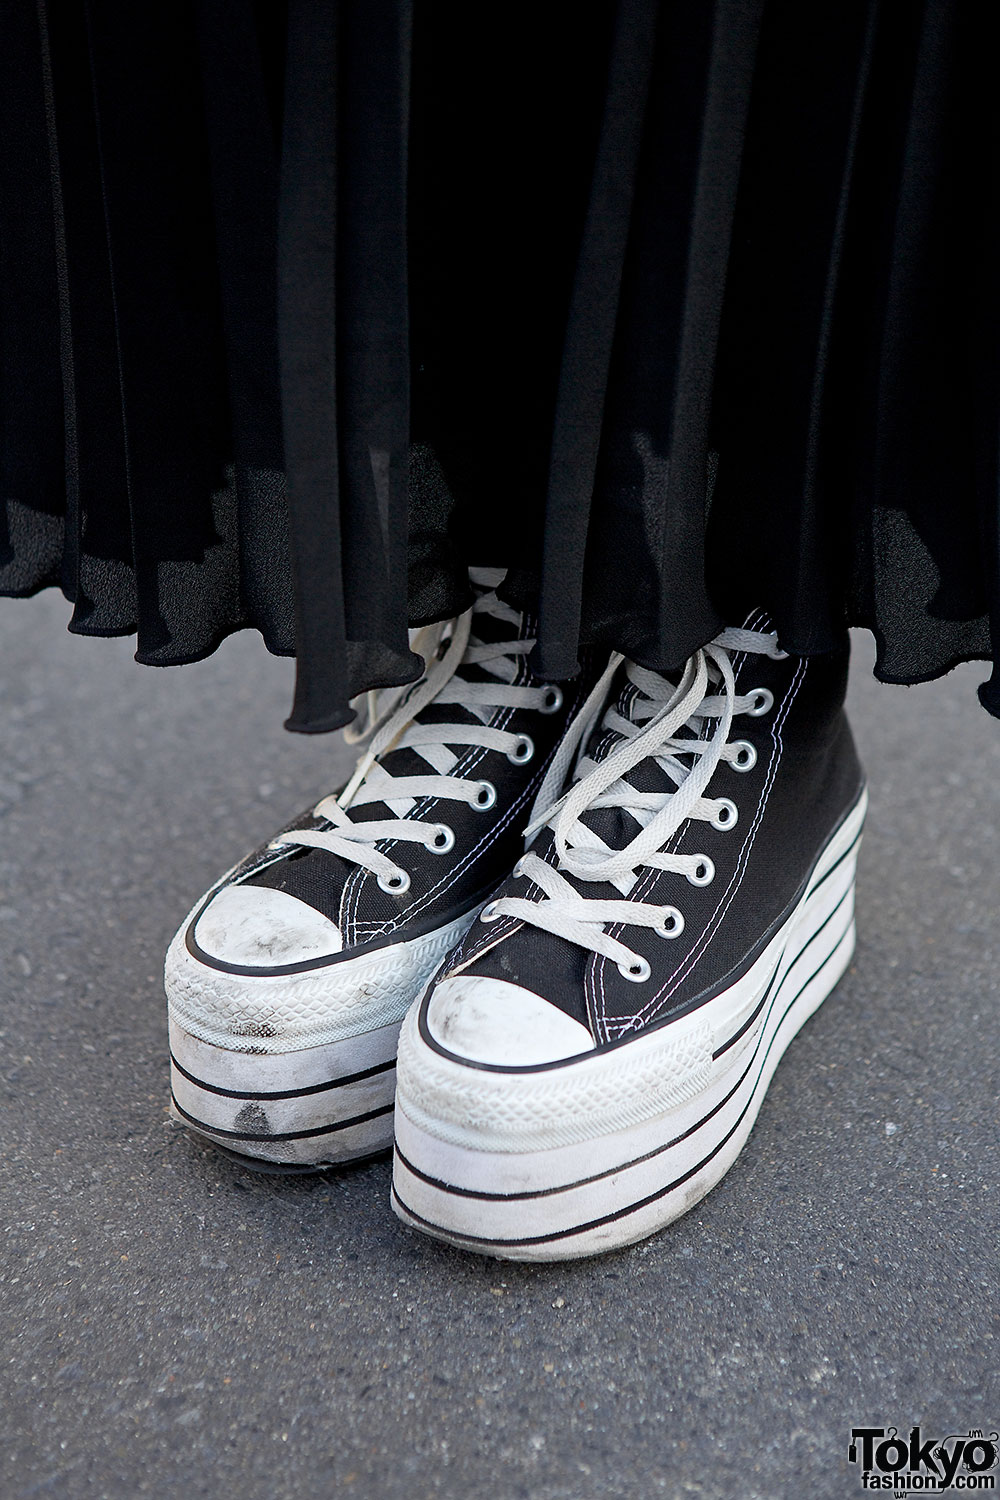 Platform Converse Sneakers Amp Pleated Skirt Tokyo Fashion